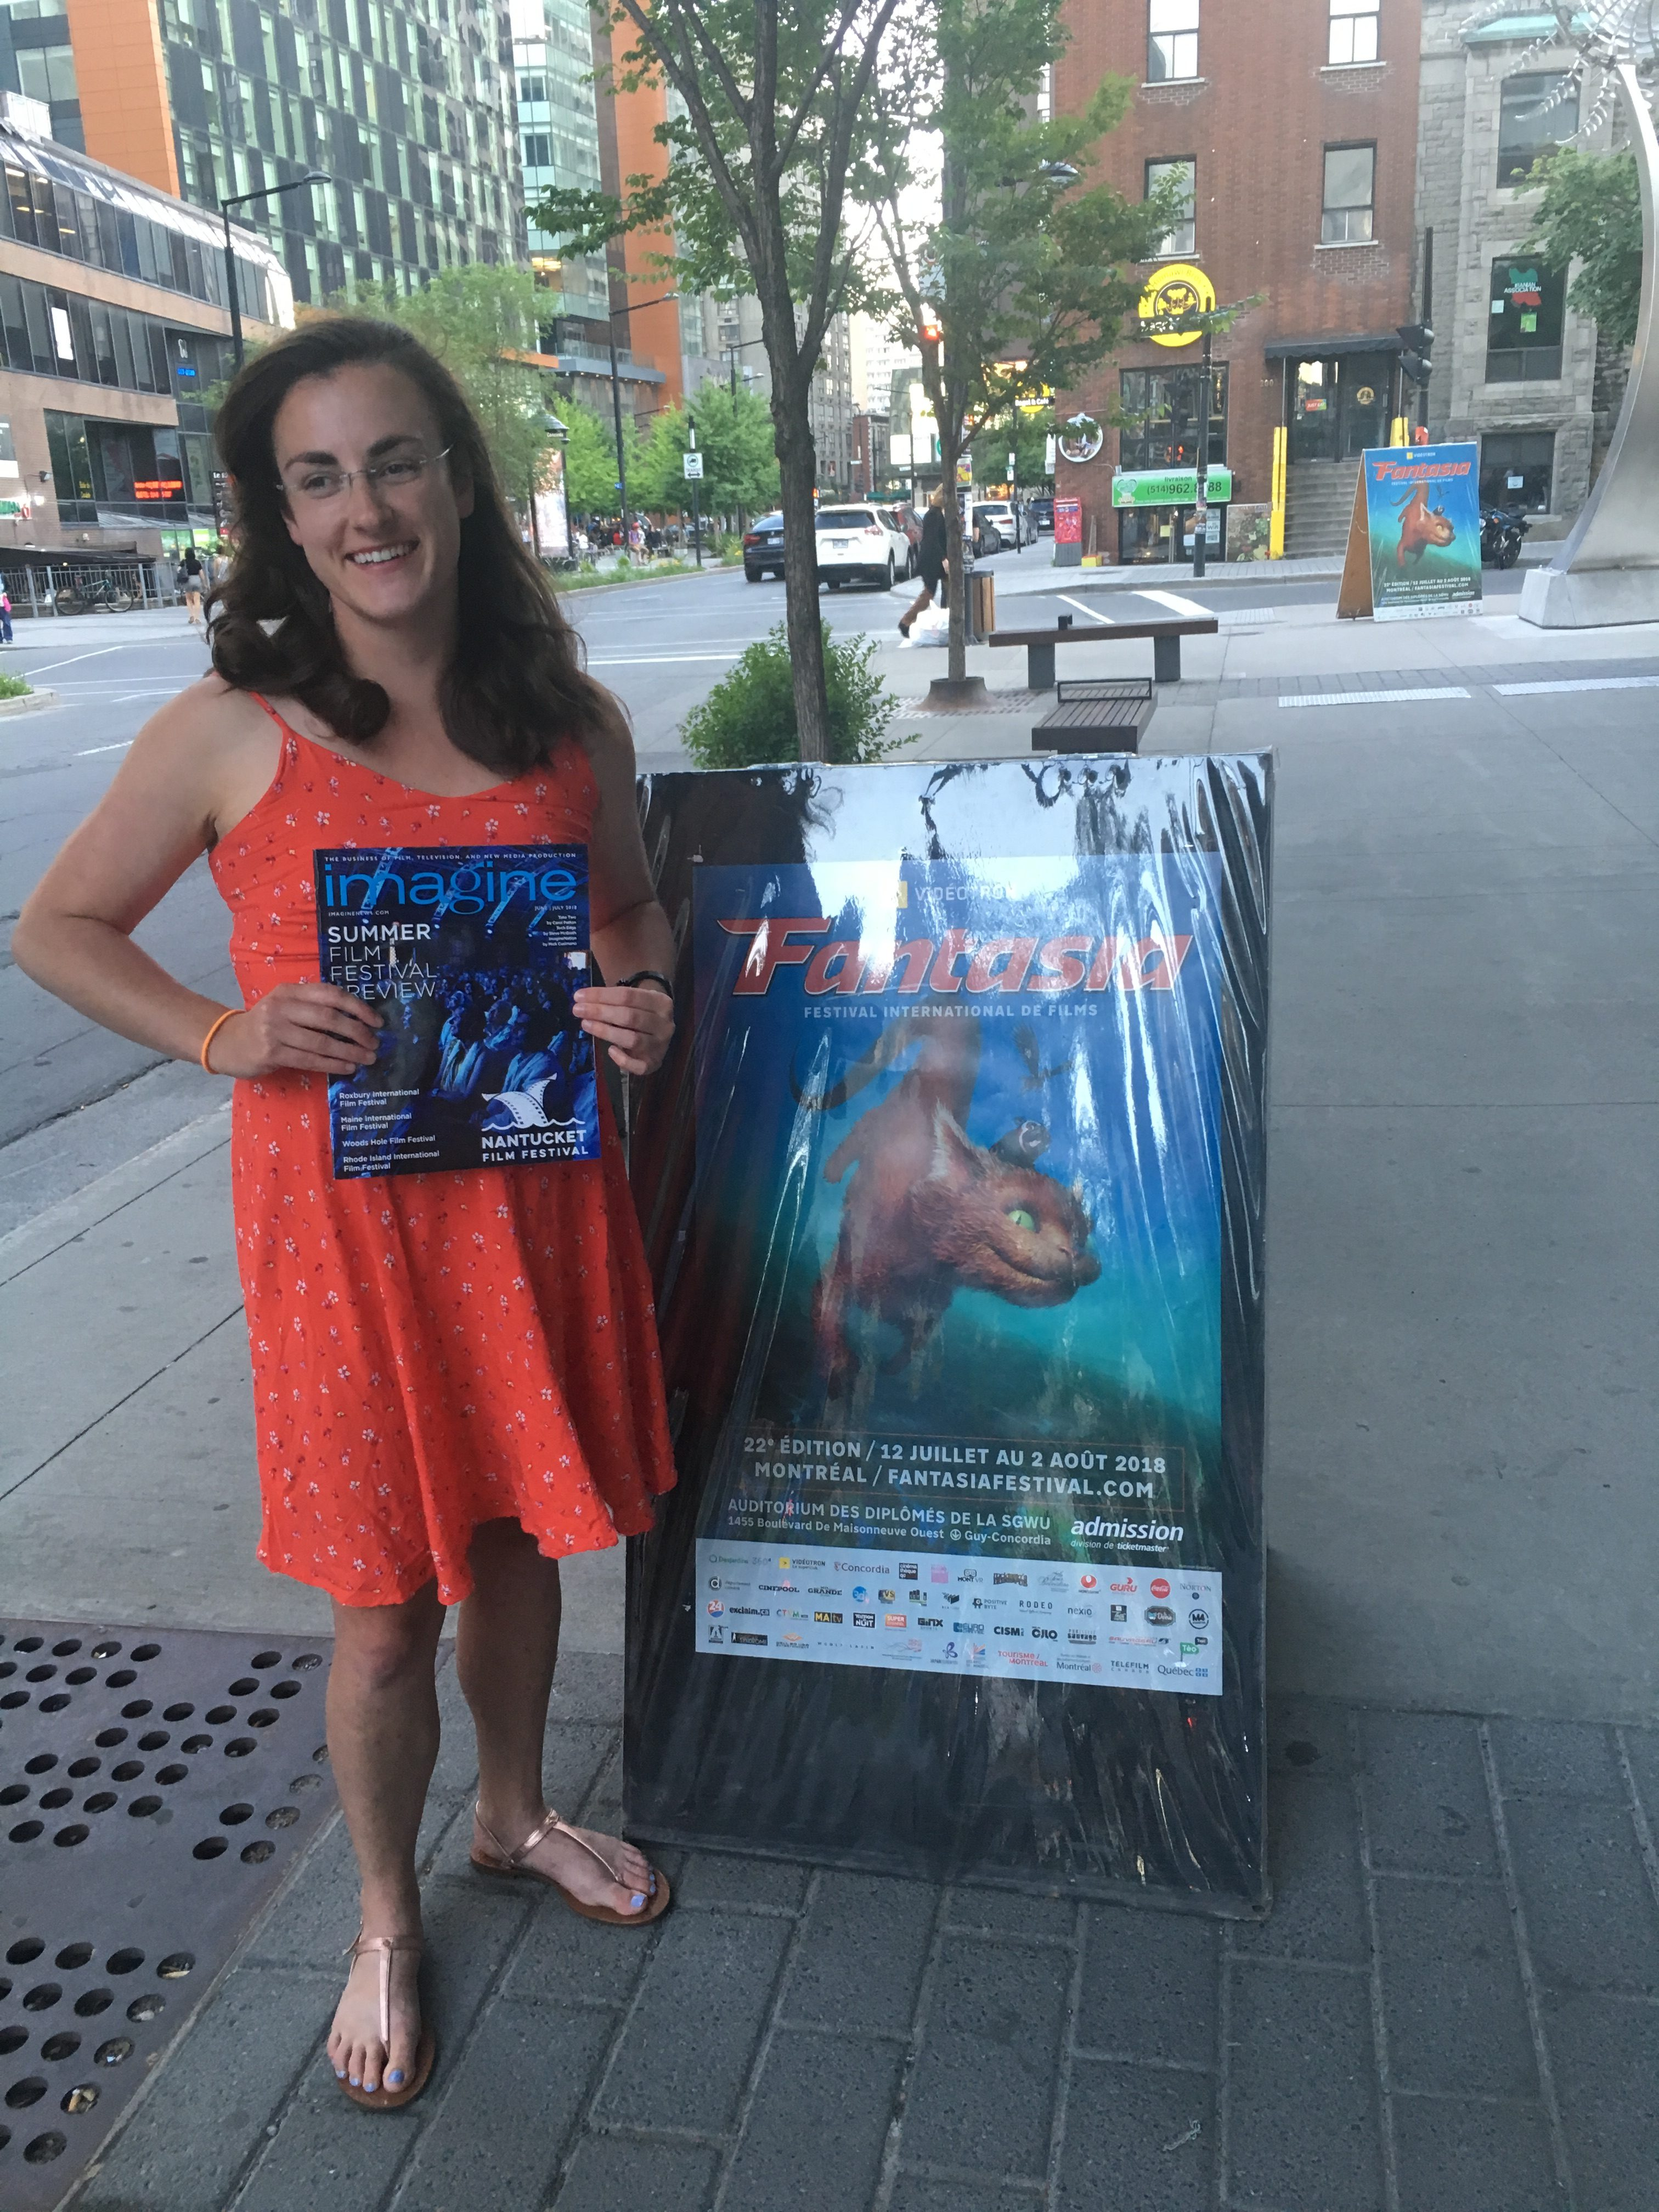 Mikhaila Waldman at Fantasia film festival holding a copy of the magazine she had her article published in during her MAPP externship experience